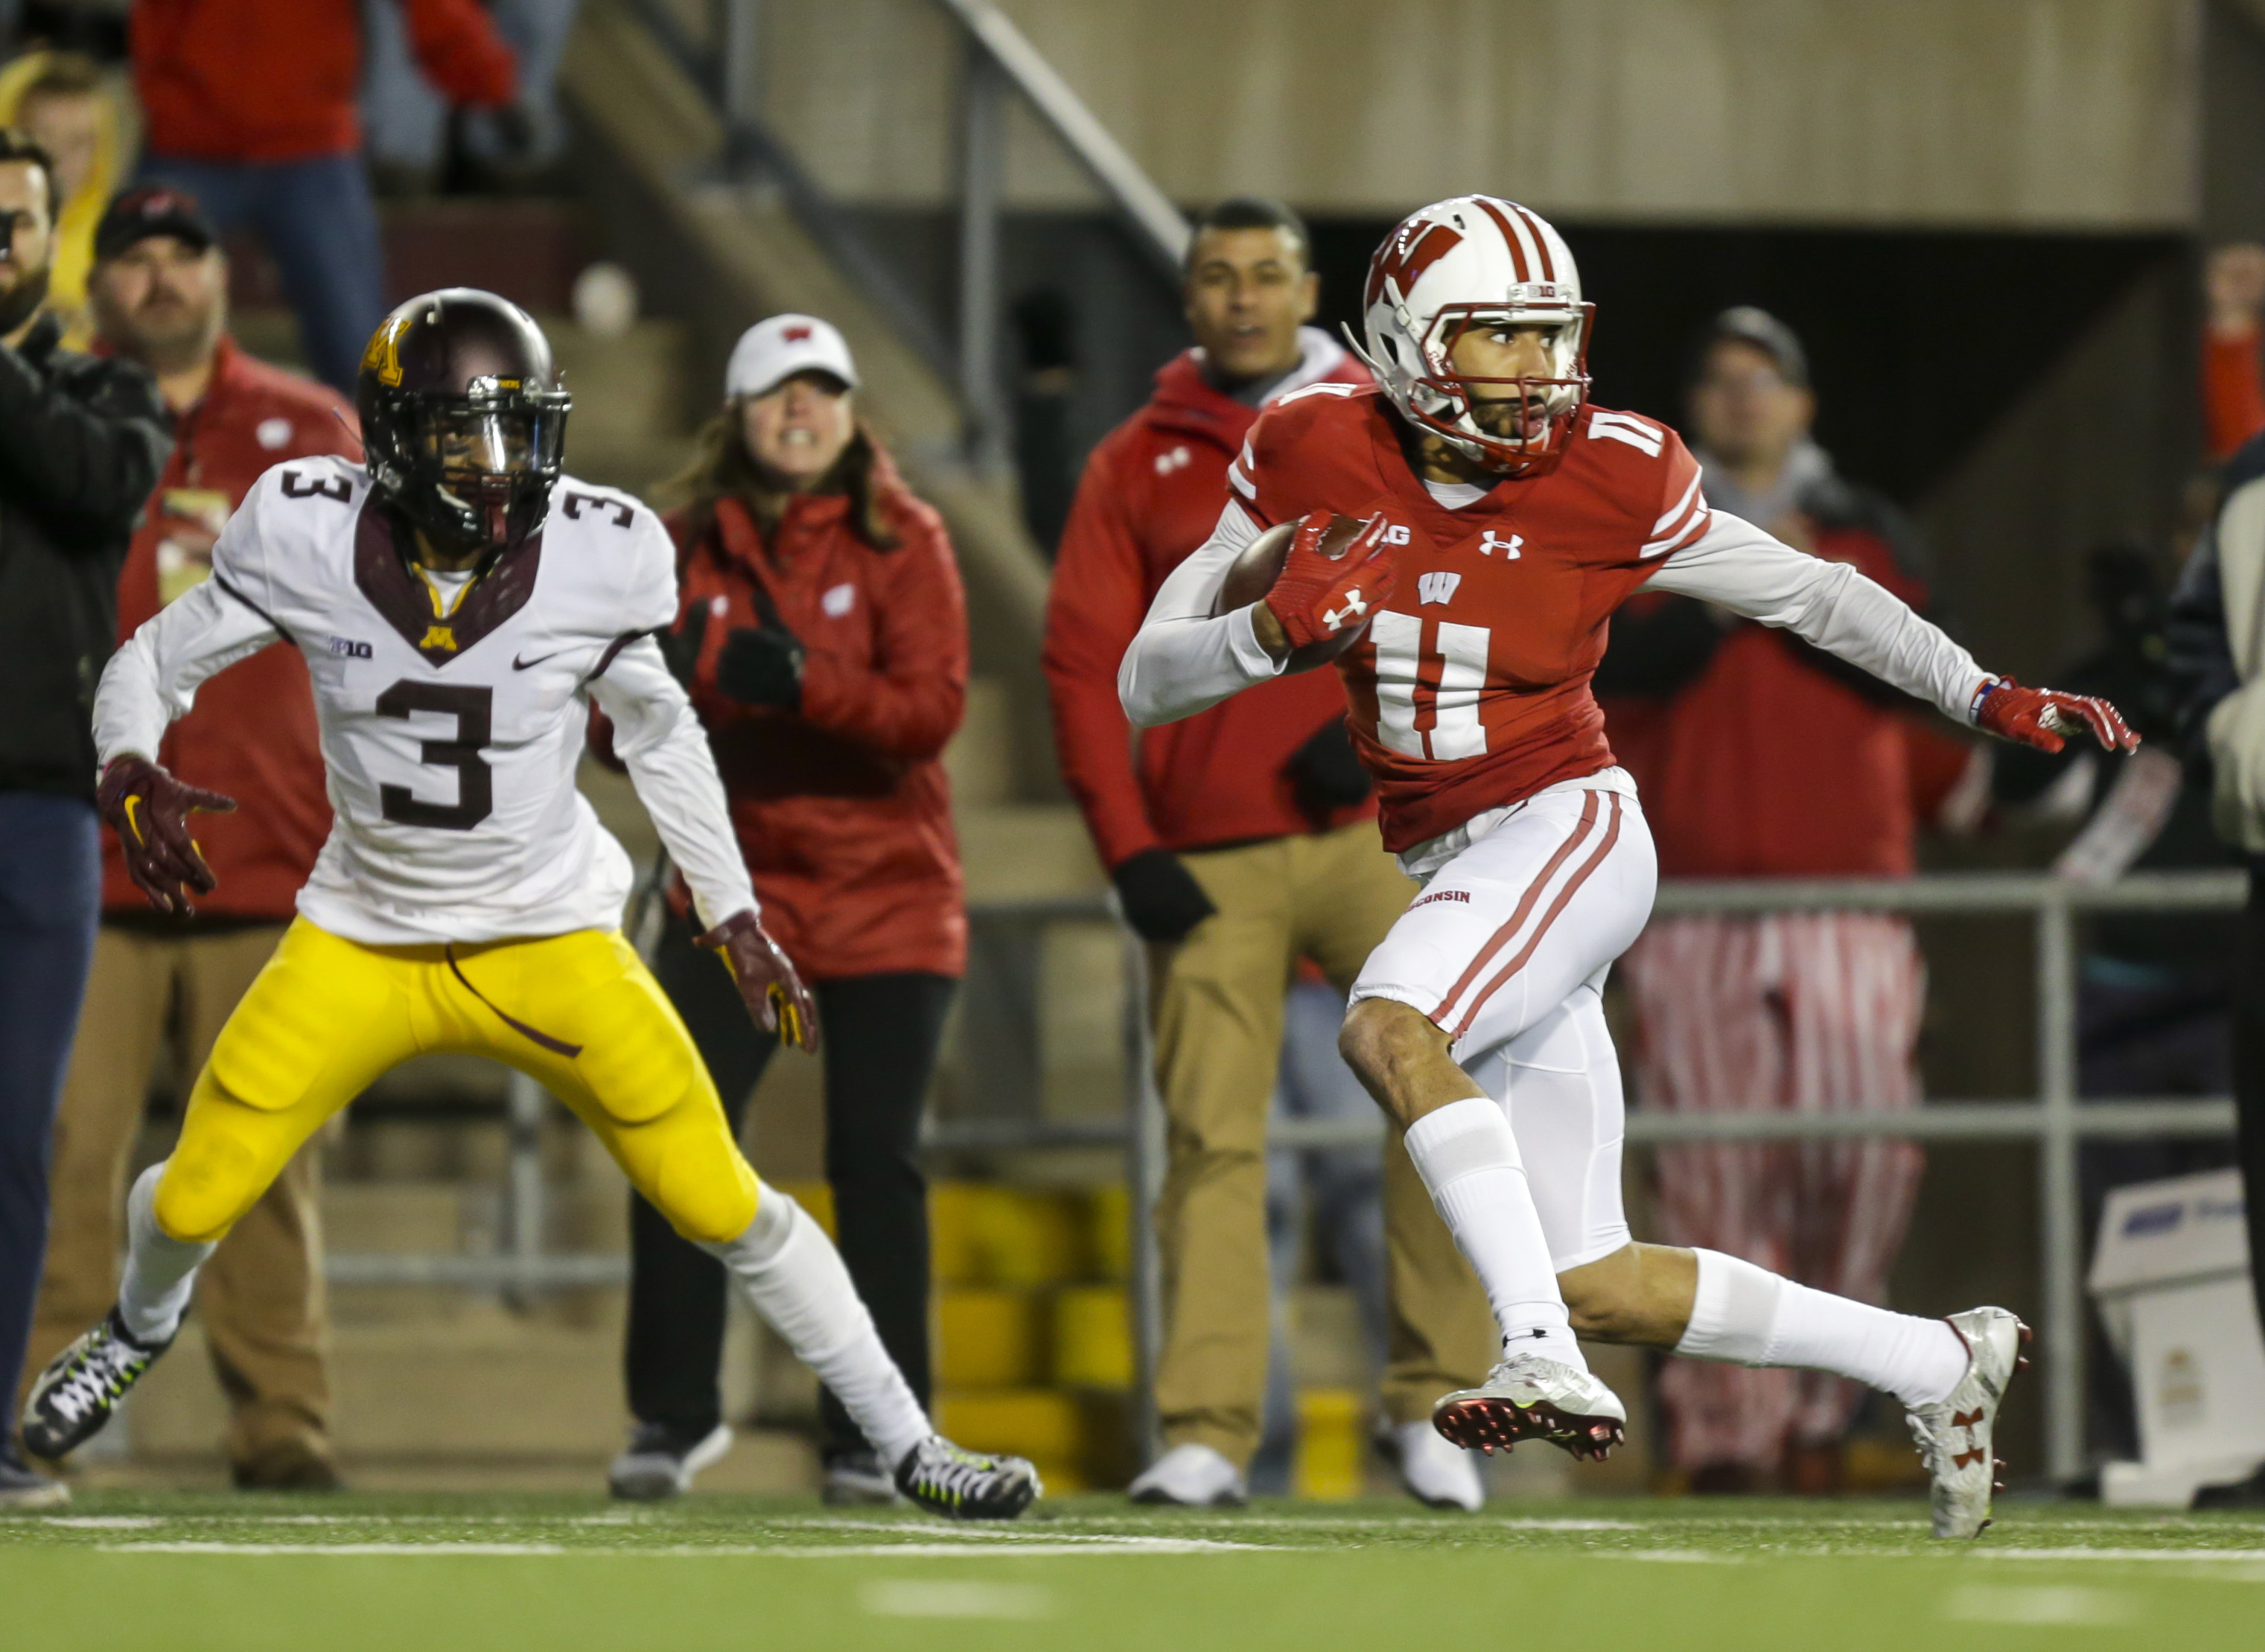 FILE - In this Nov. 26, 2016, file photo, Wisconsin wide receiver Jazz Peavy (11) runs against Minnesota defensive back KiAnte Hardin during the second half of an NCAA college football game, in Madison, Wis. No. 6 Wisconsin dusted off the jet sweep to rou